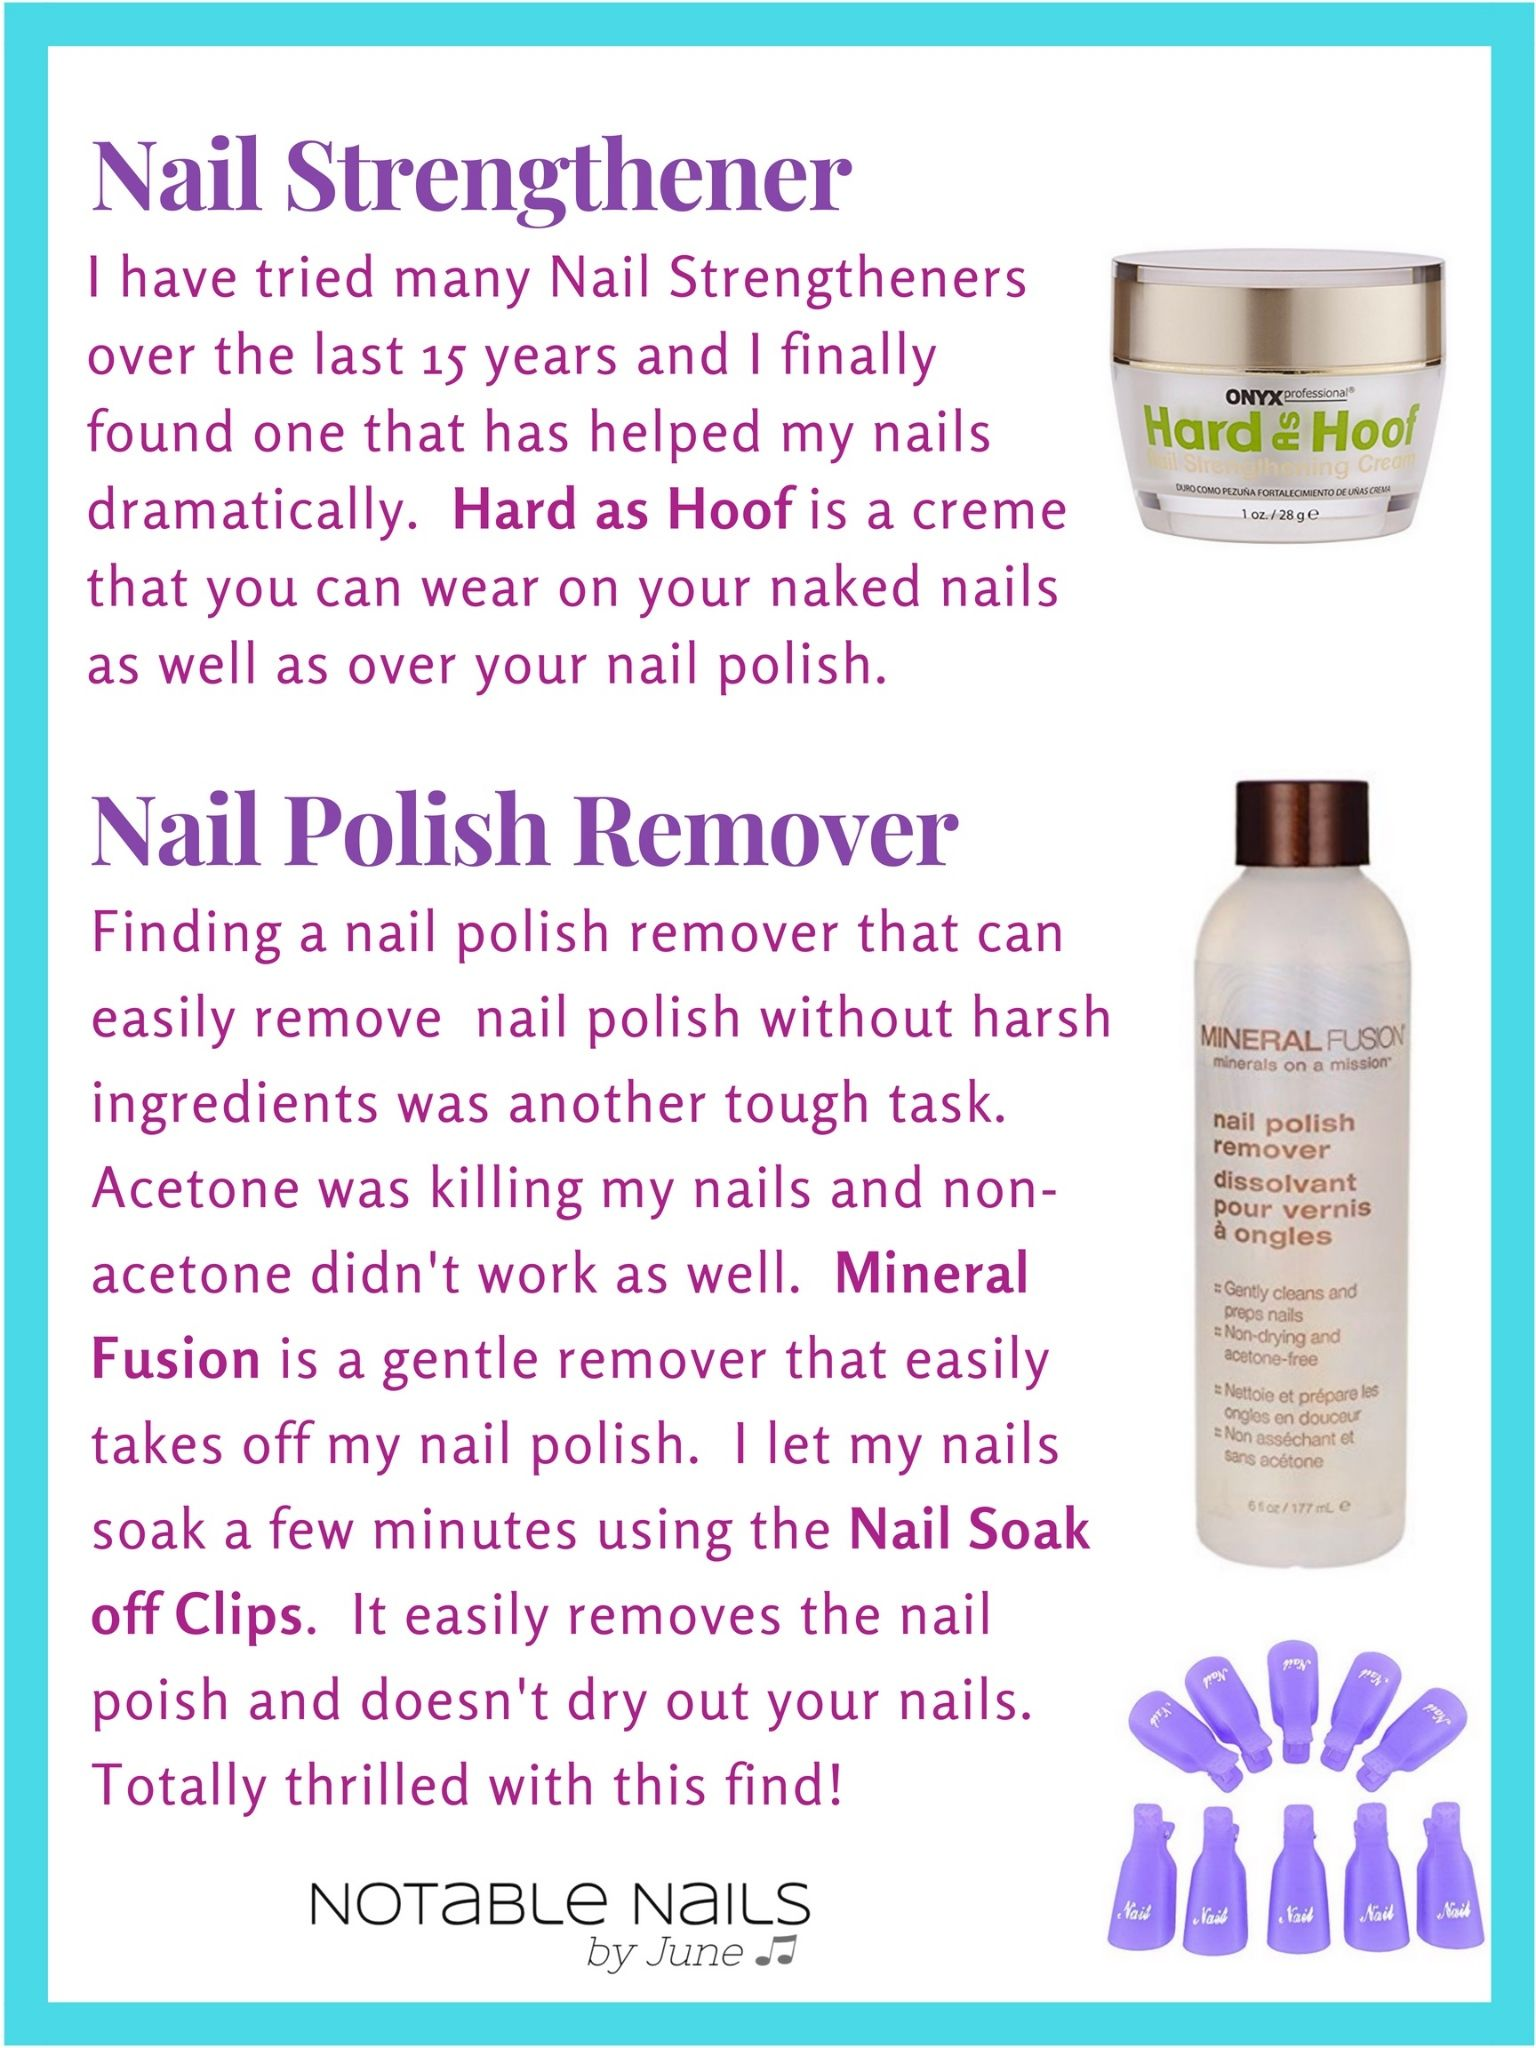 Here Are Some Great Tips For Nail Health I Ve Found A Great Gentle Nail Polish Remover That Is Really Effective I Color Street Nails Nail Health Color Street